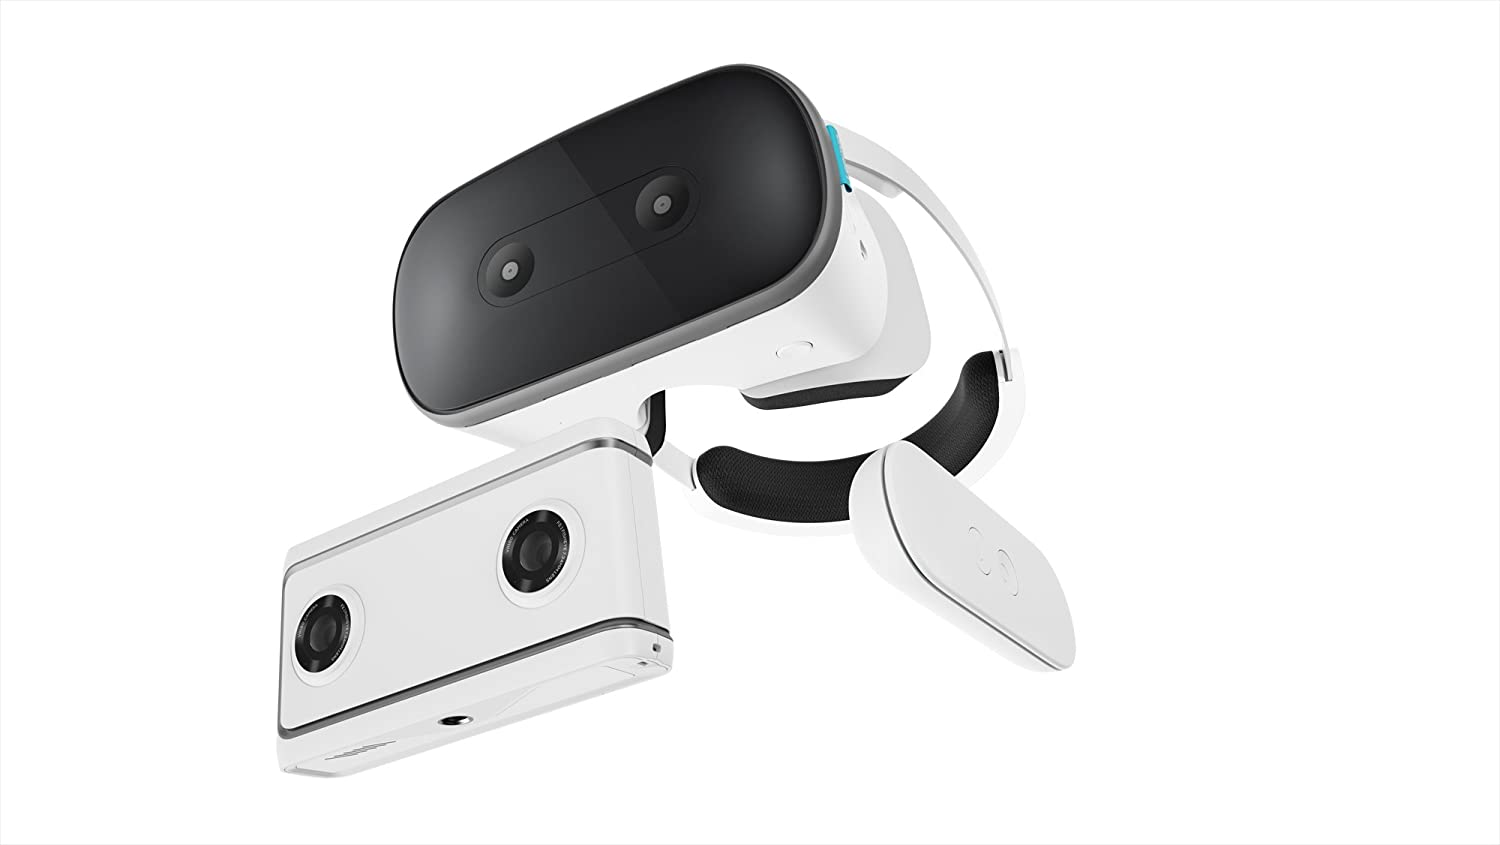 Lenovo Mirage Solo VR Headset and VR-Ready Photo and Video Camera Bundle with Daydream